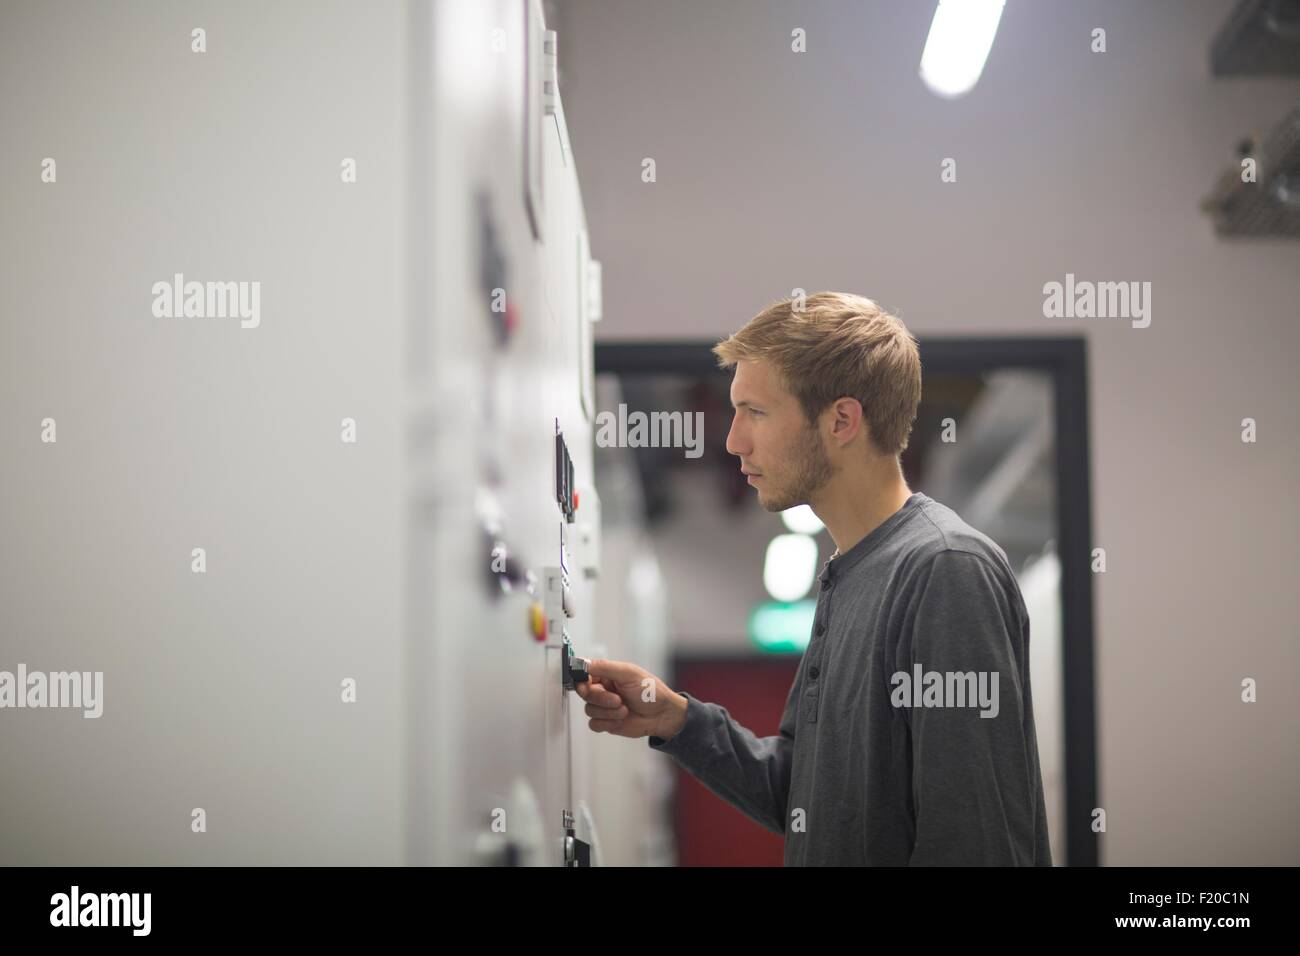 Young male technician turning switch in technical room - Stock Image